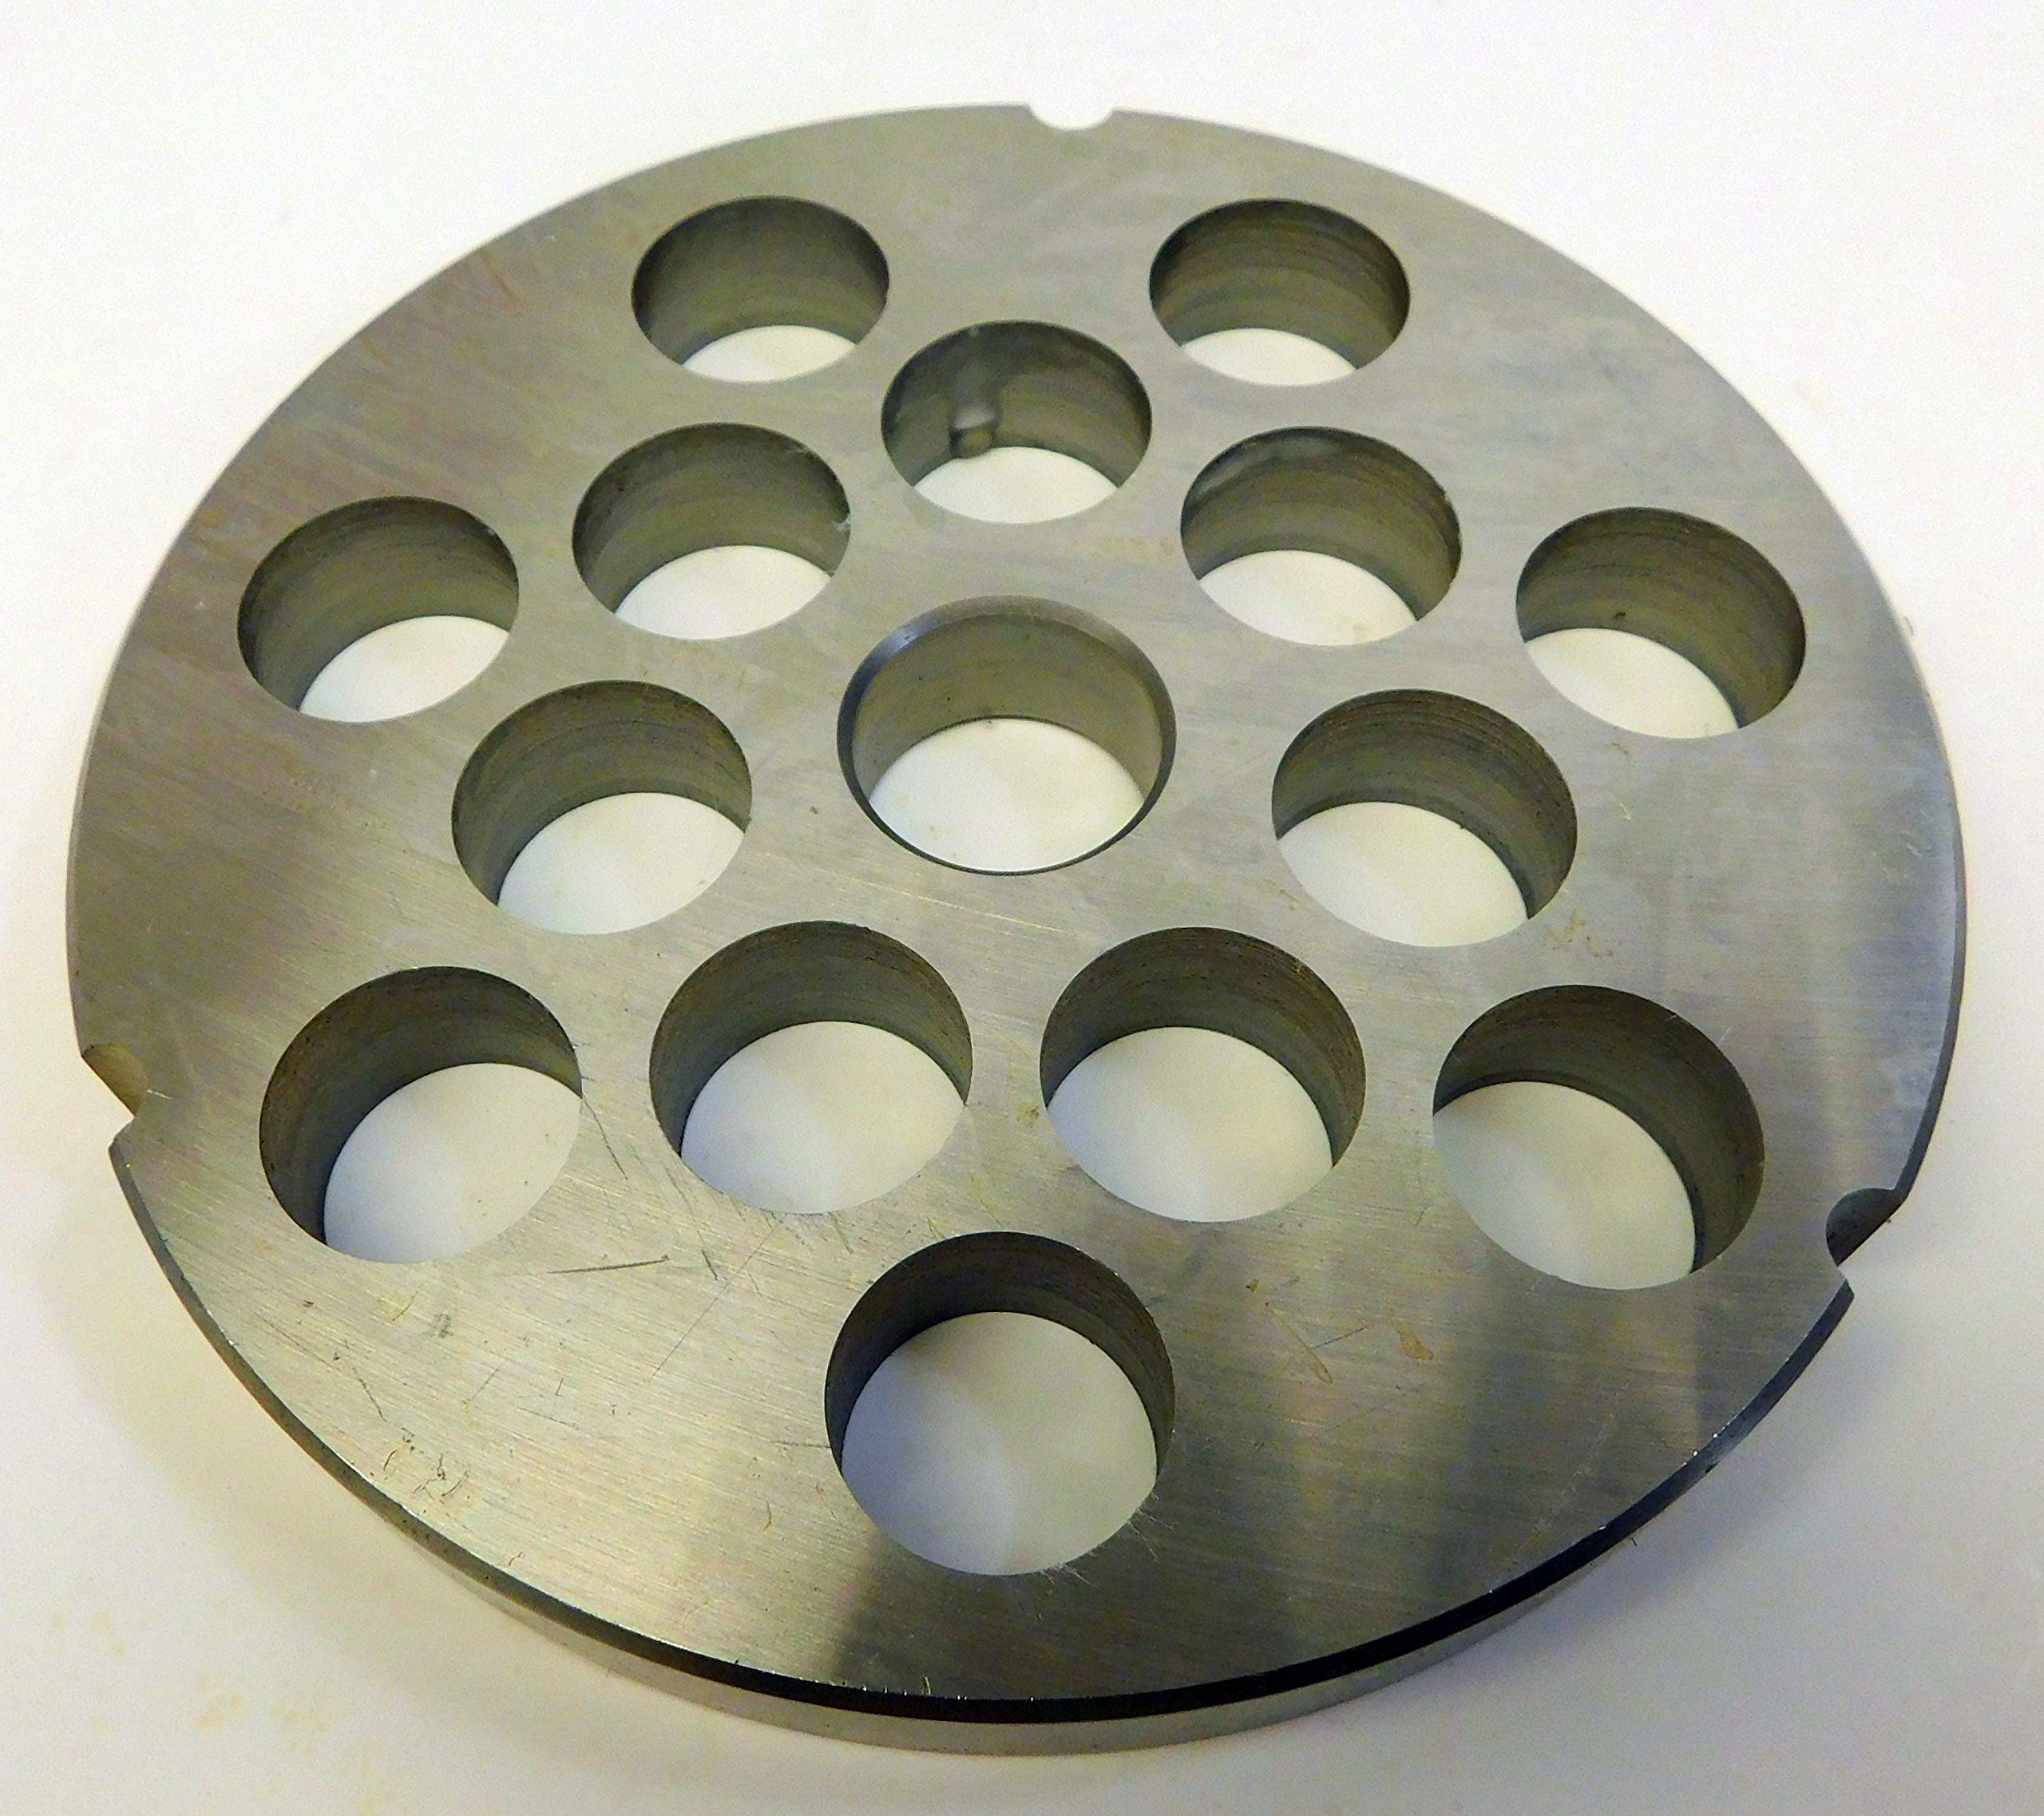 Smokehouse Chef Size #42 x 3/4'' coarse grind holes. Stainless Steel for Cabelas, Hobart, LEM, Weston and others